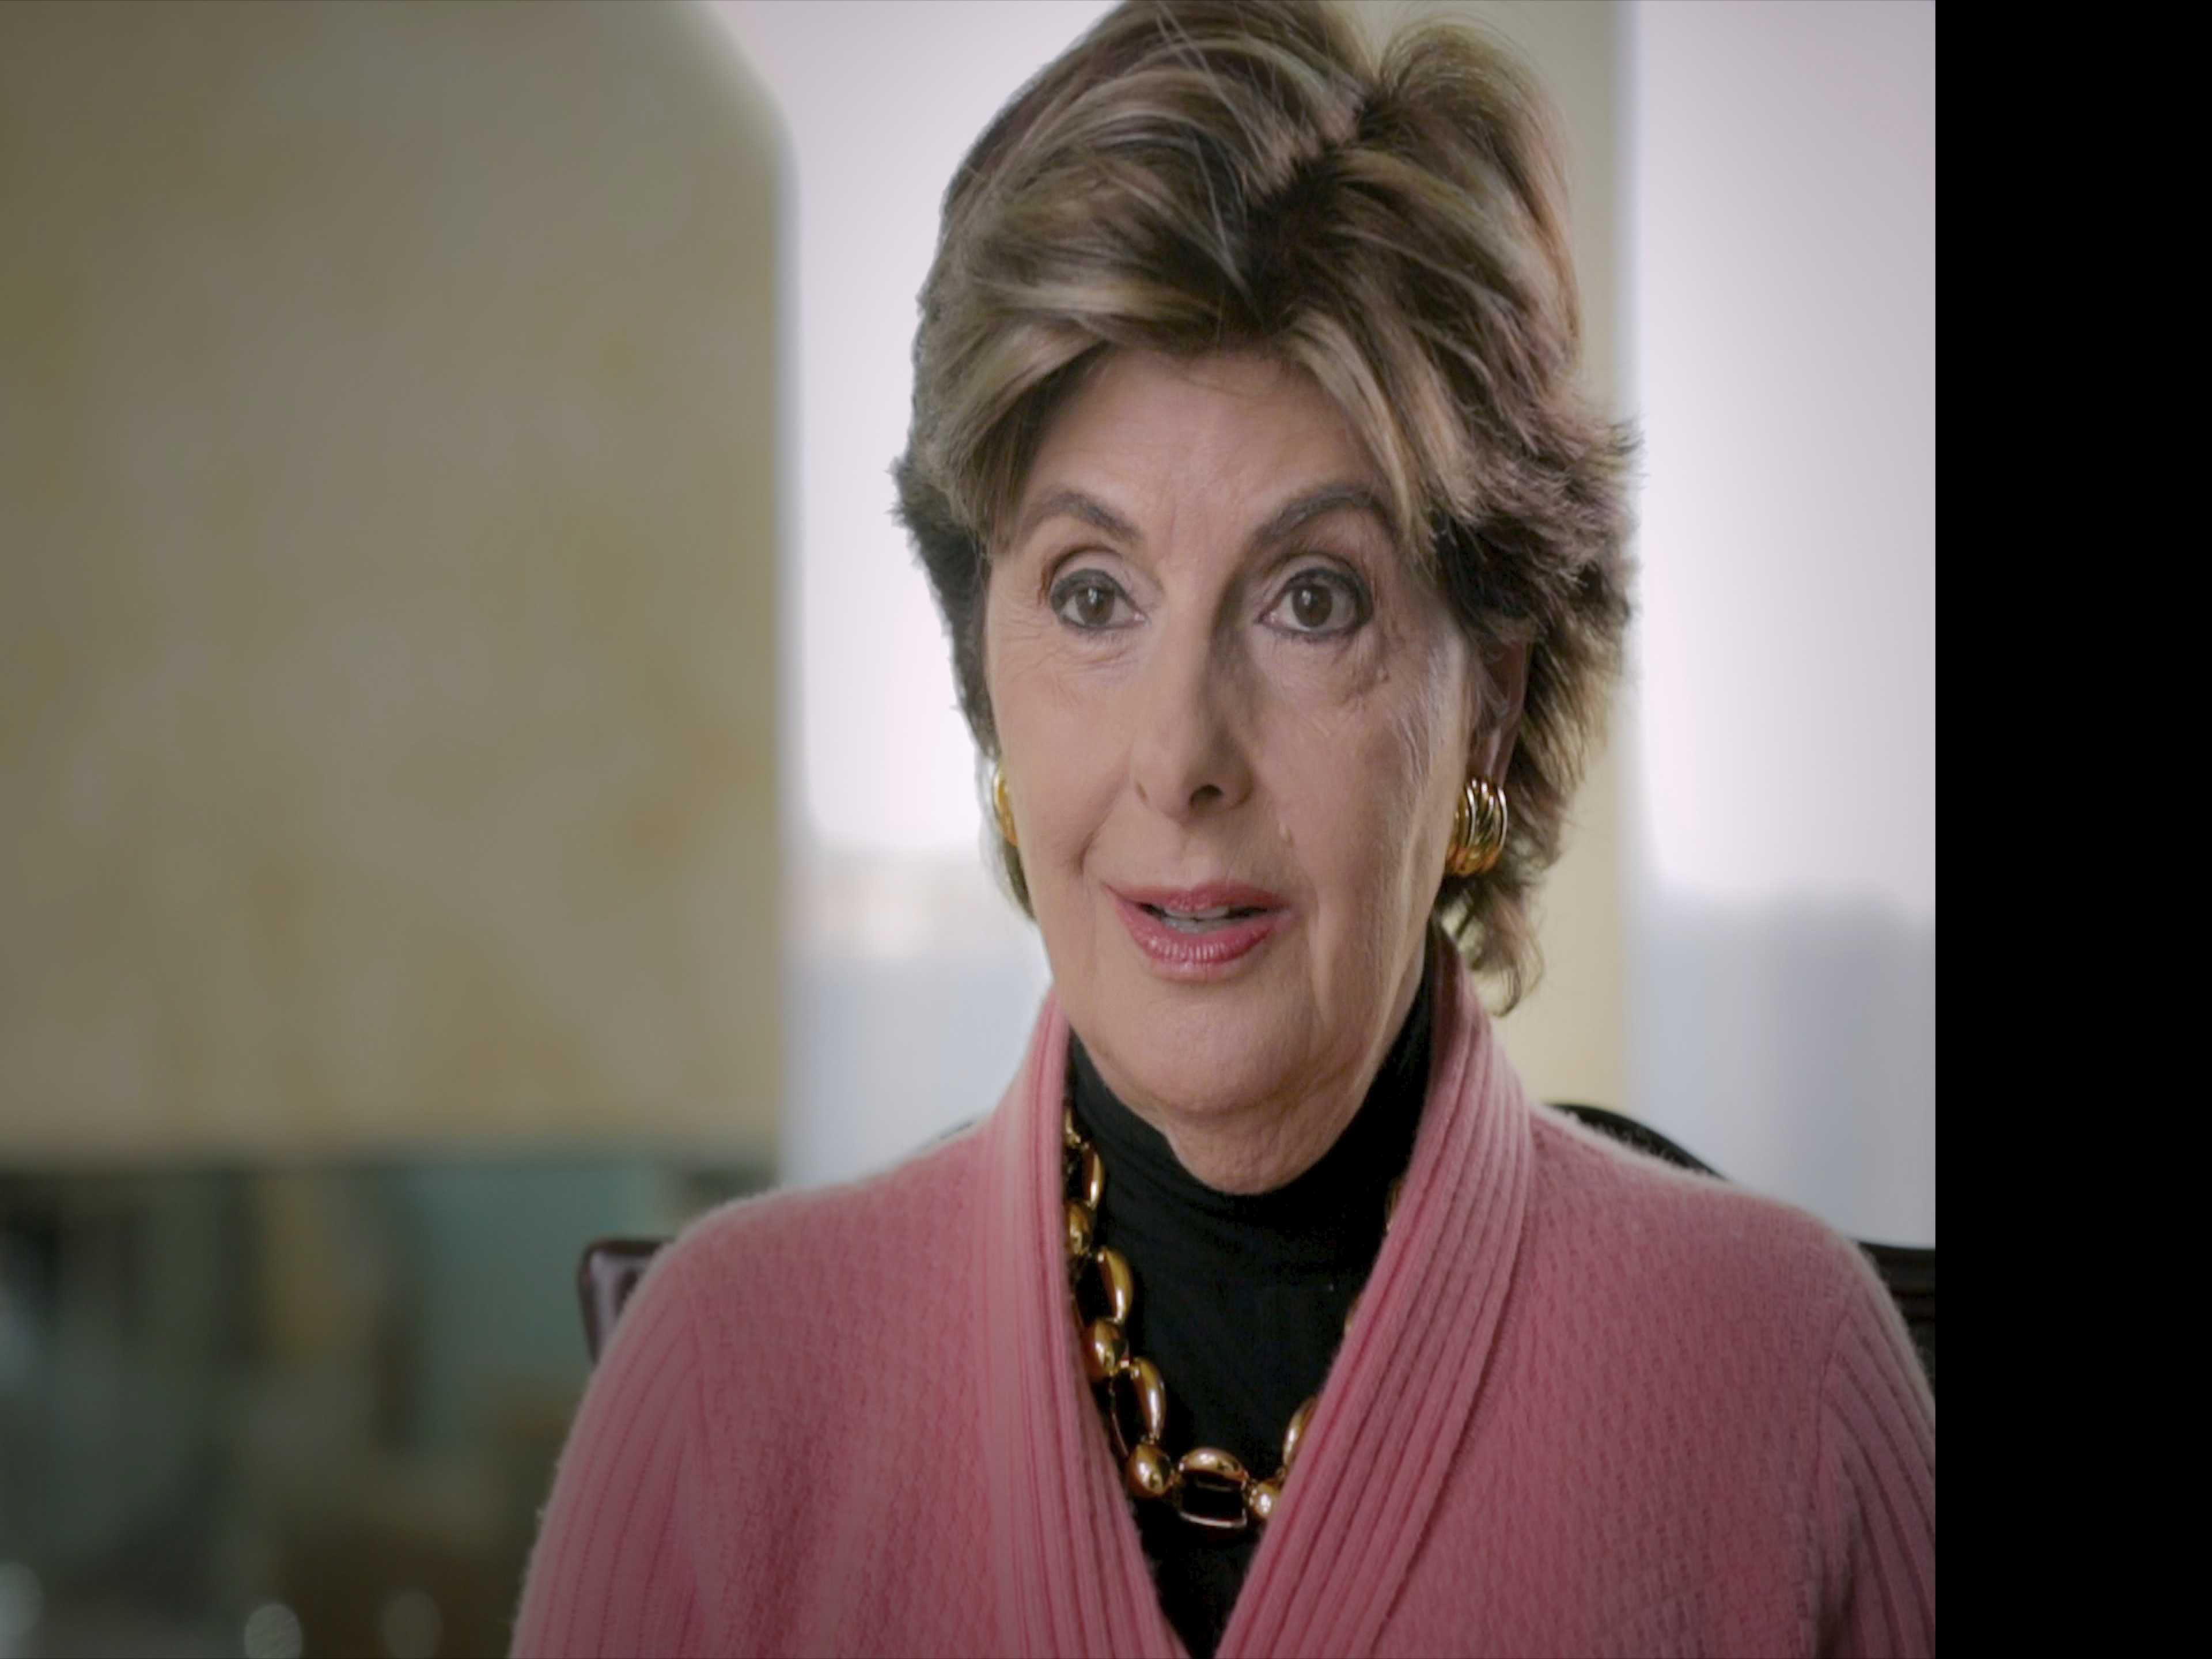 Allred at 76: Still Fighting, and Shrugging Off the Critics